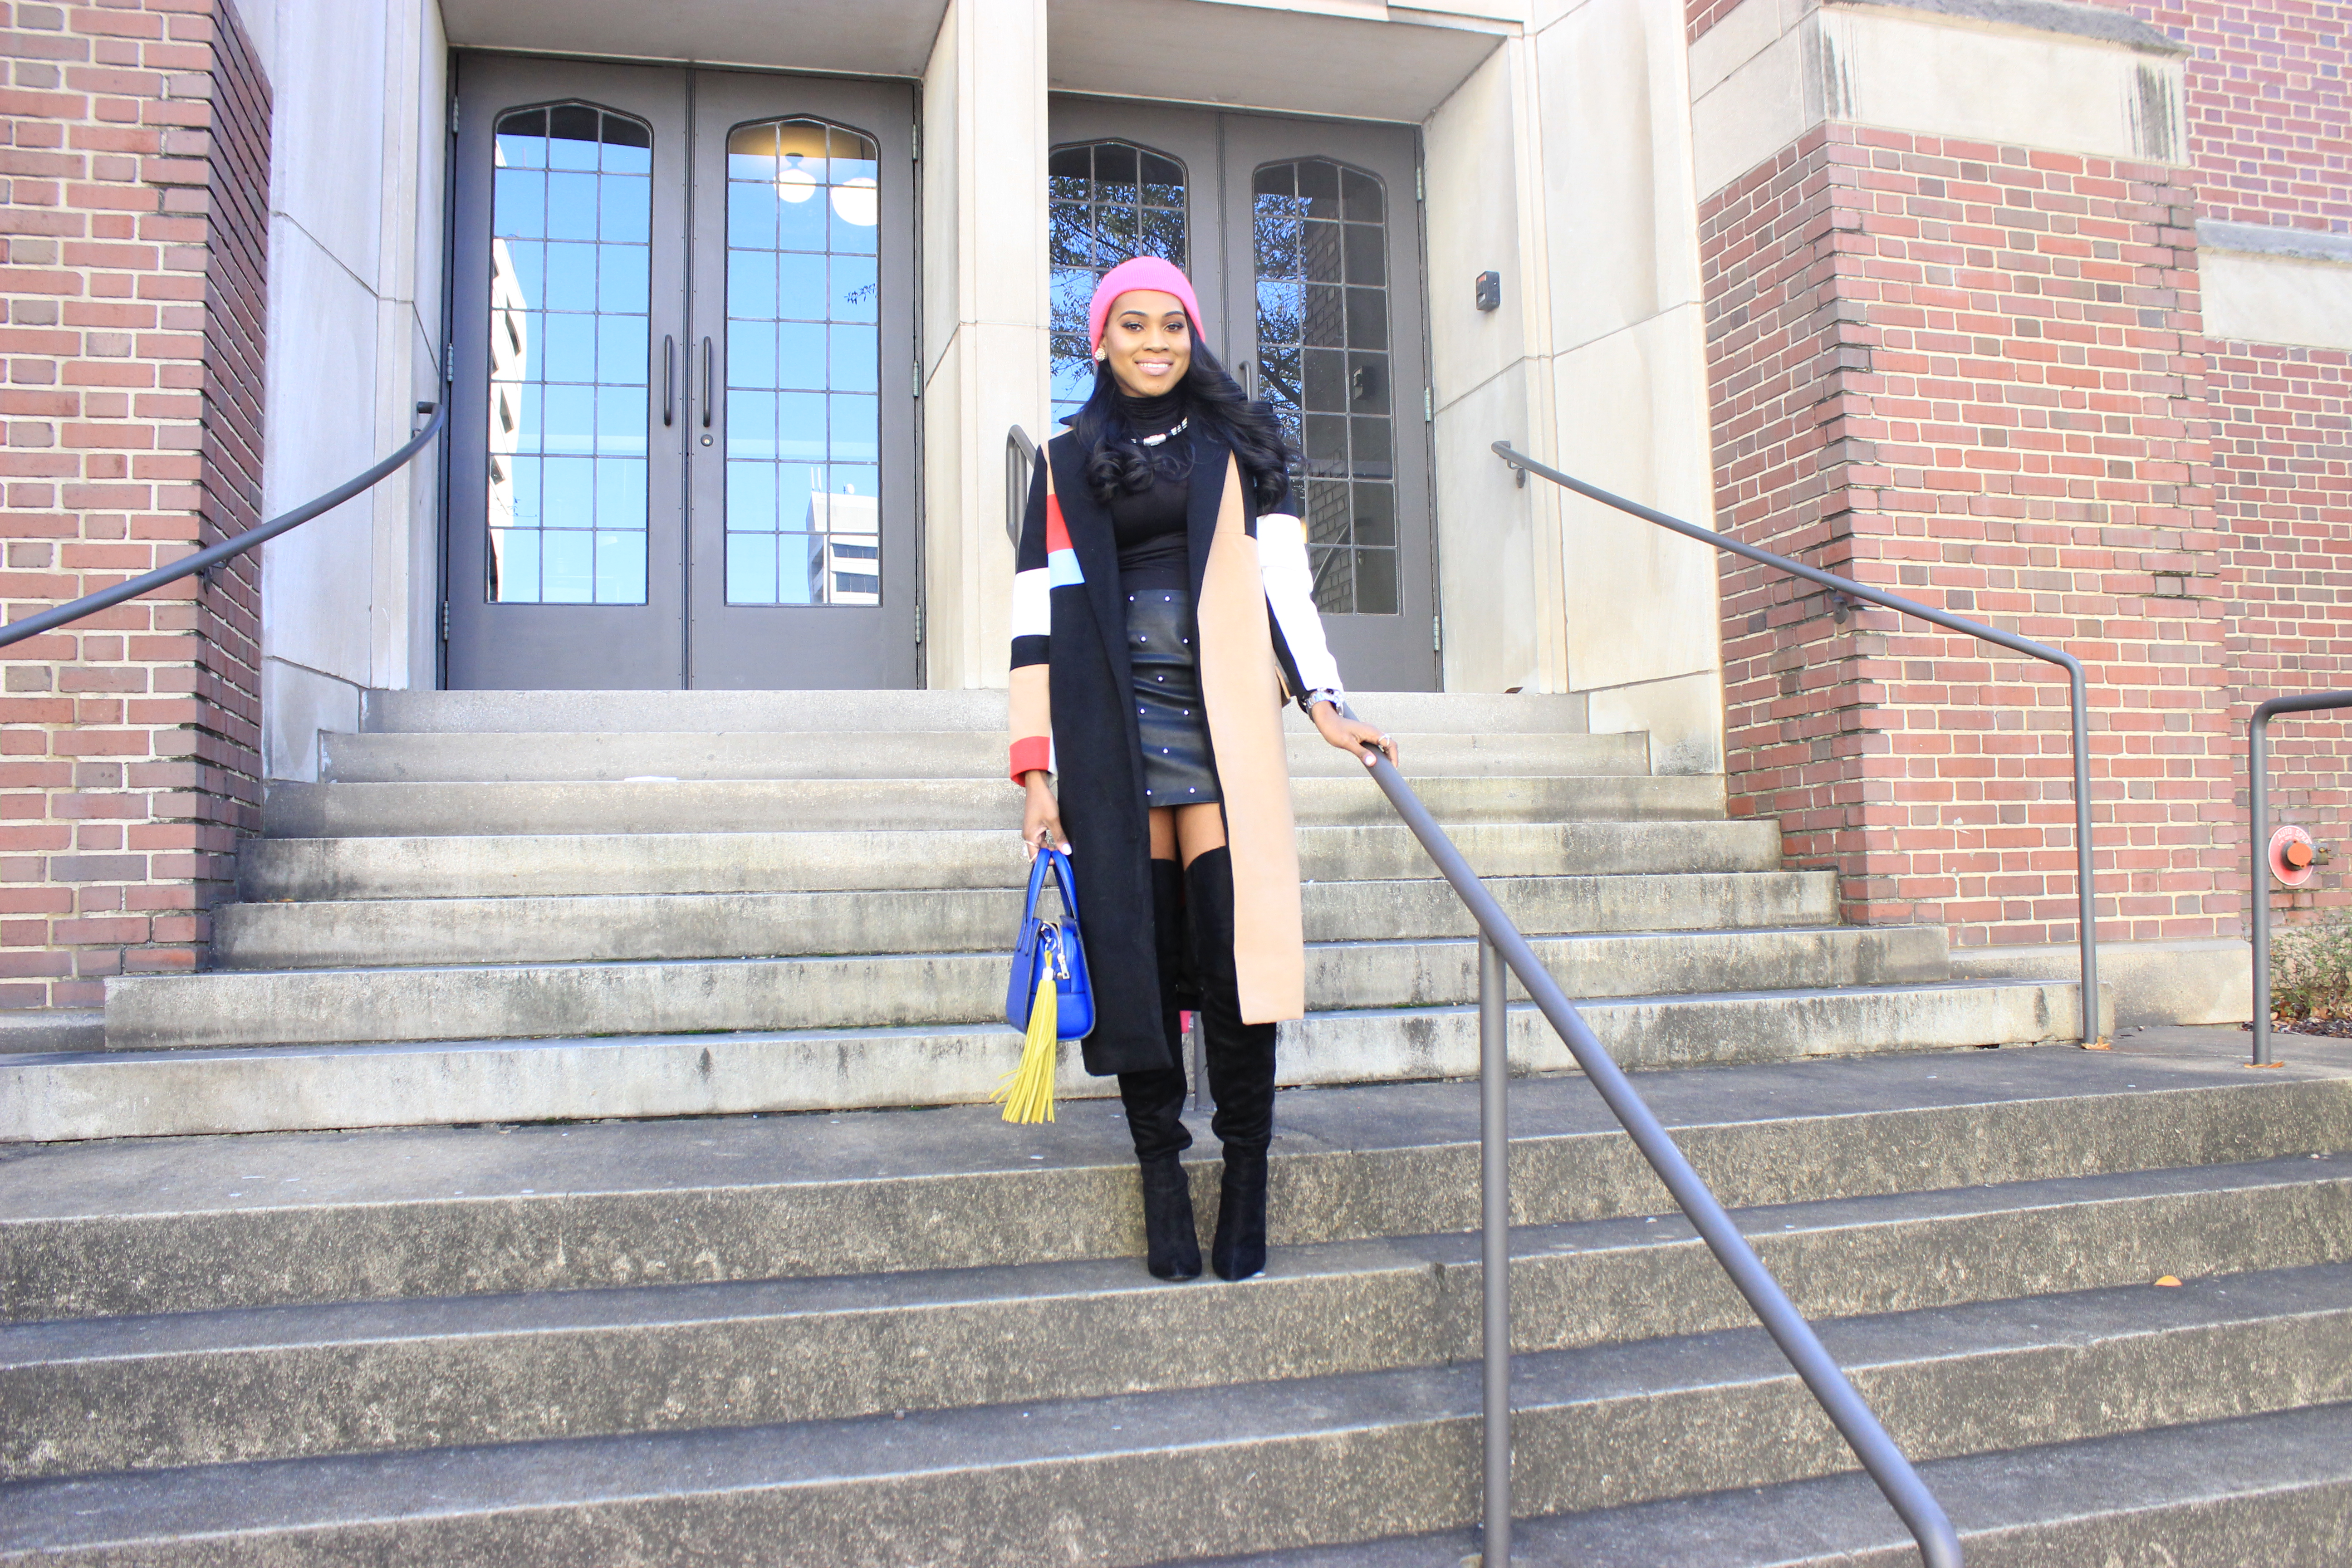 Style-Files-SheIn-Multicolor-Lapel-Color-Block-Coat-Forever21-Faux-Leather-studded-mini-skirt-black-sheer-turtleneck-Truffle-Collection-Over- The-Knee-Lace-Up-Back-High-Heeled-Boots-Hot-Pink-Beanie-Winter-Coat-Style-Guide-Oohlalablog-18